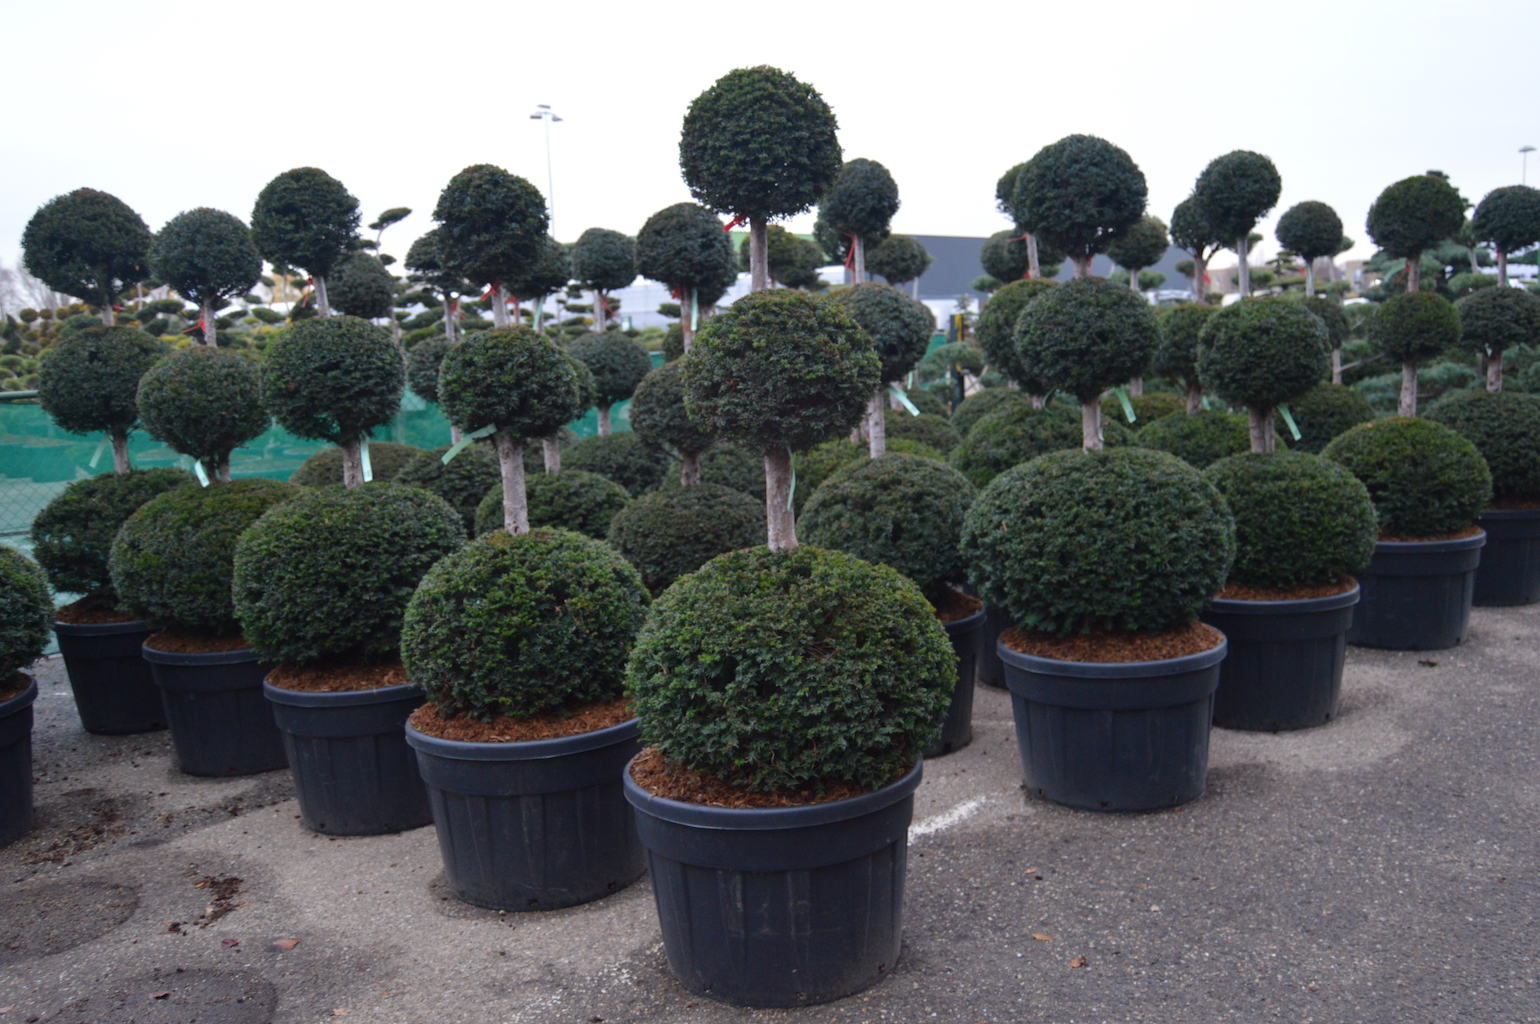 Taxus baccata triple ball topiary plants 150-175cm tall in container